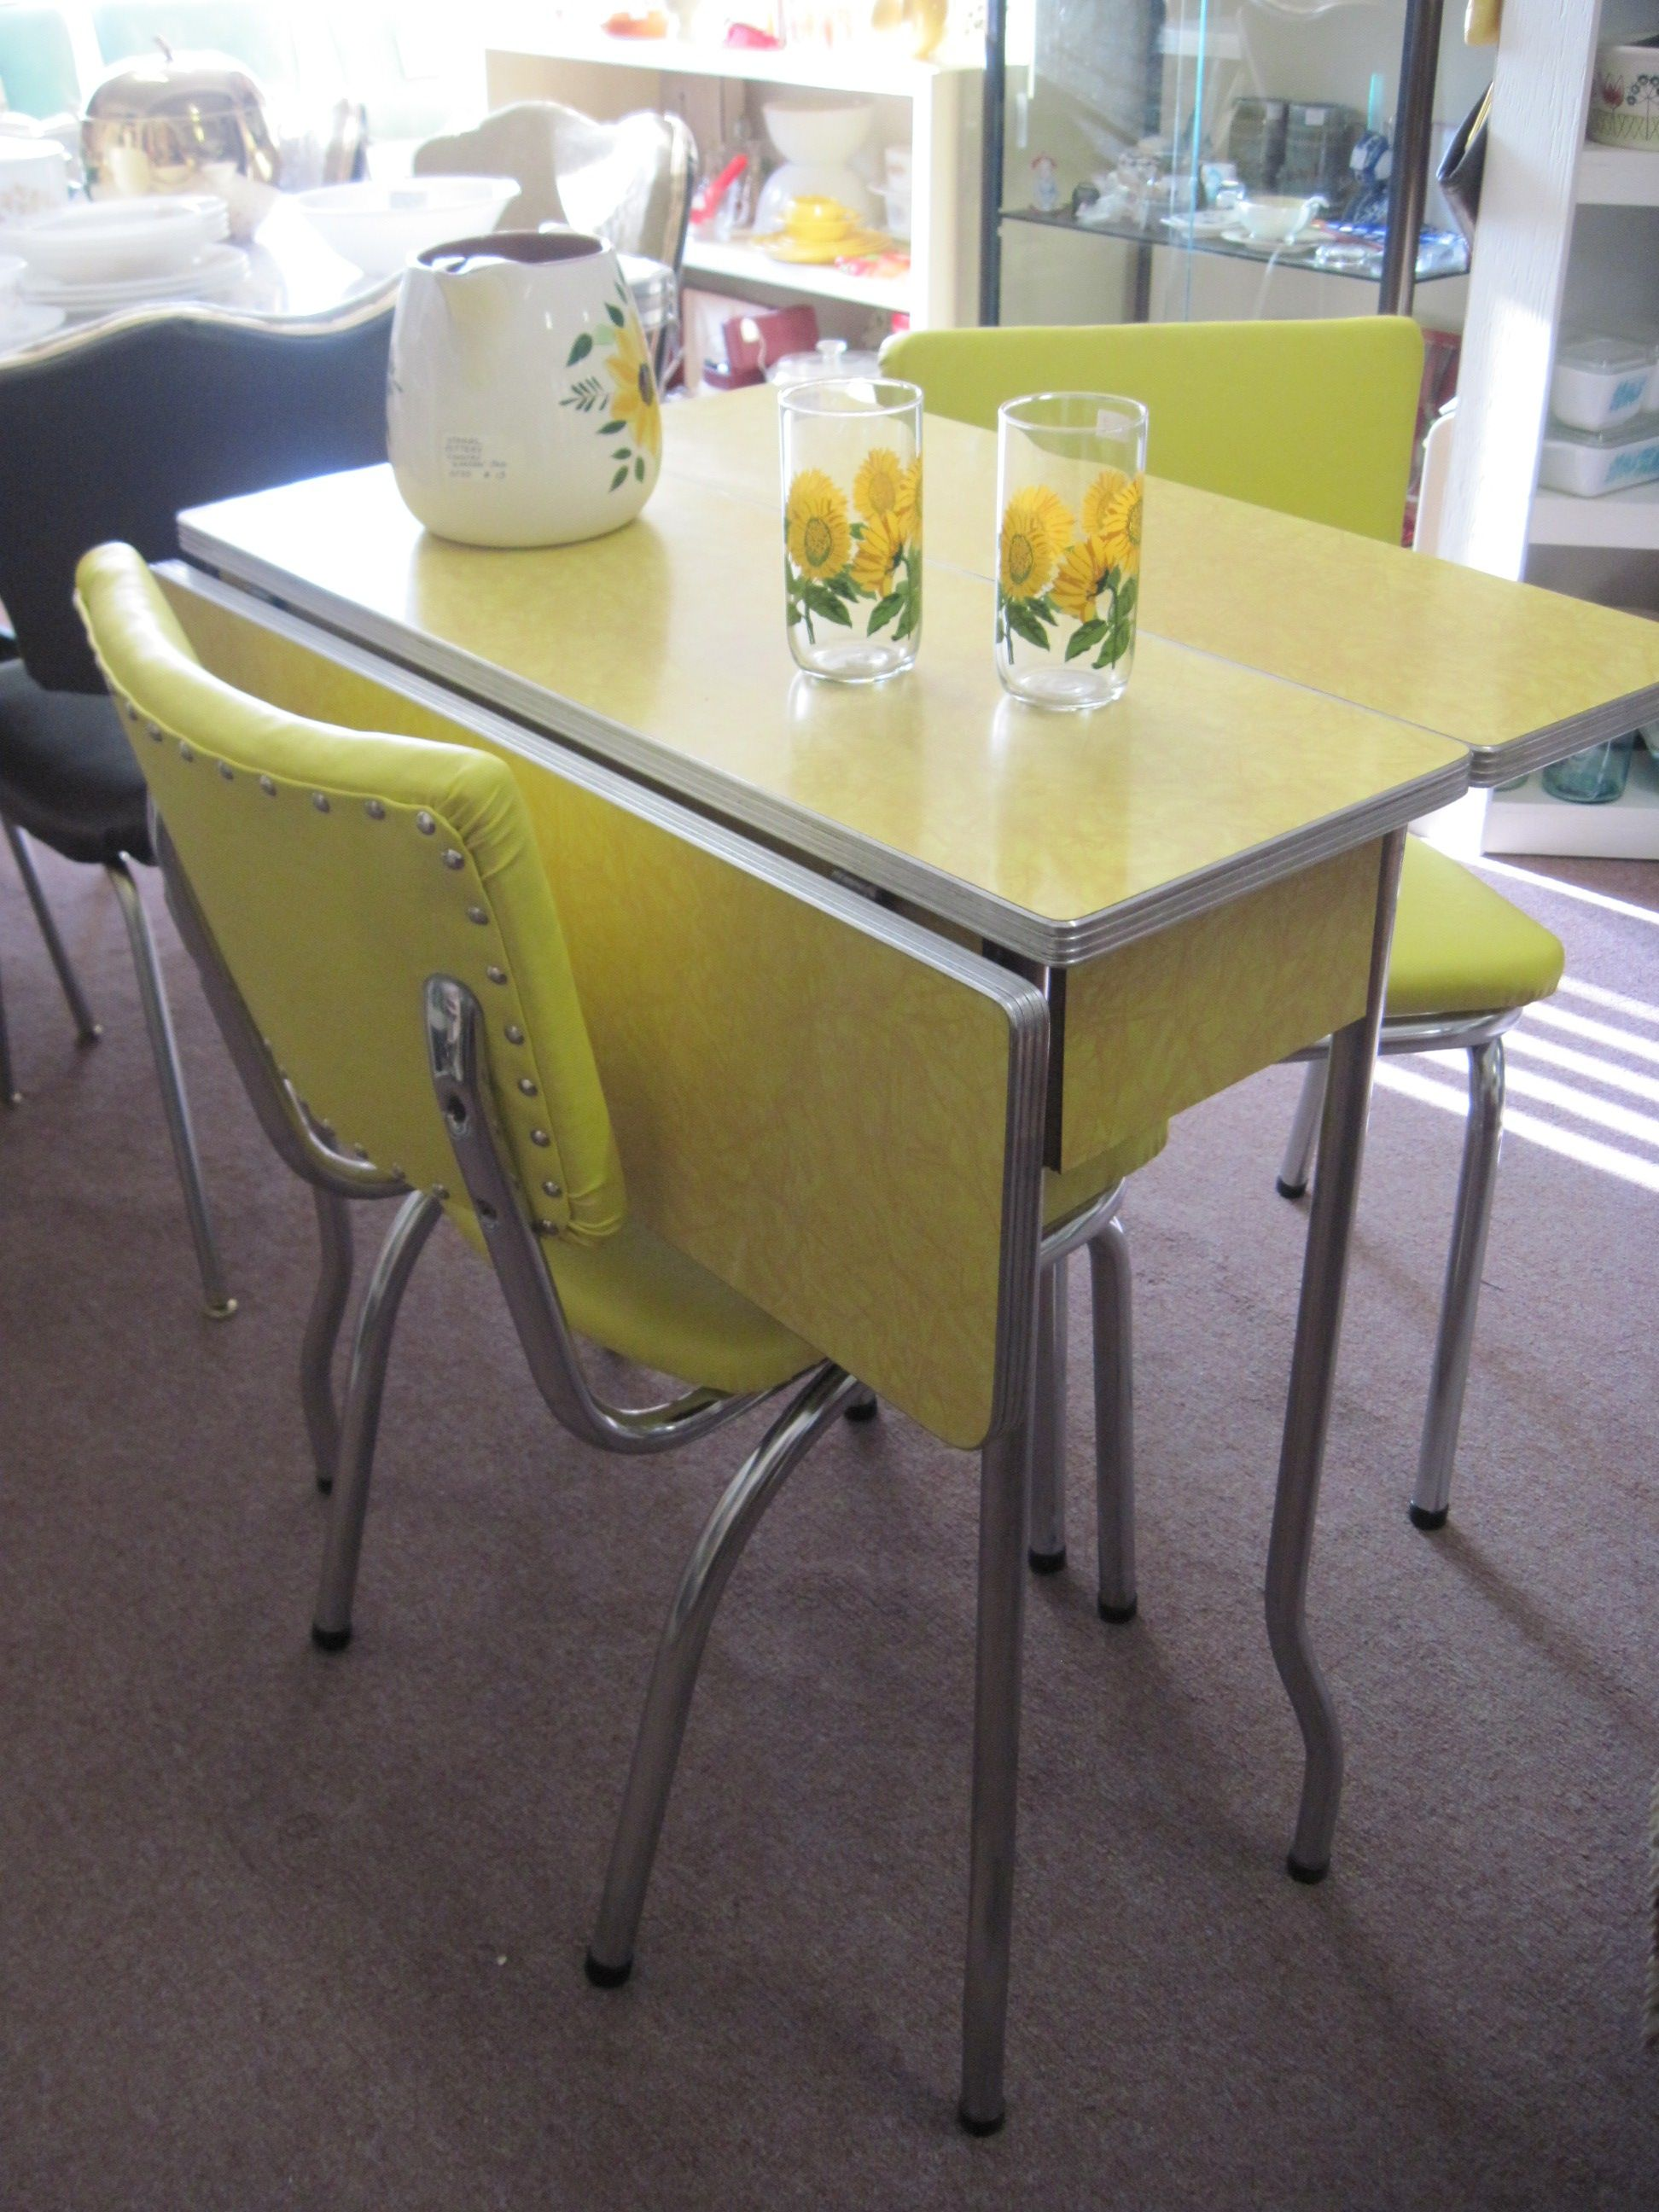 1950 Formica Table and Chairs  Yellow 1950s Cracked Ice